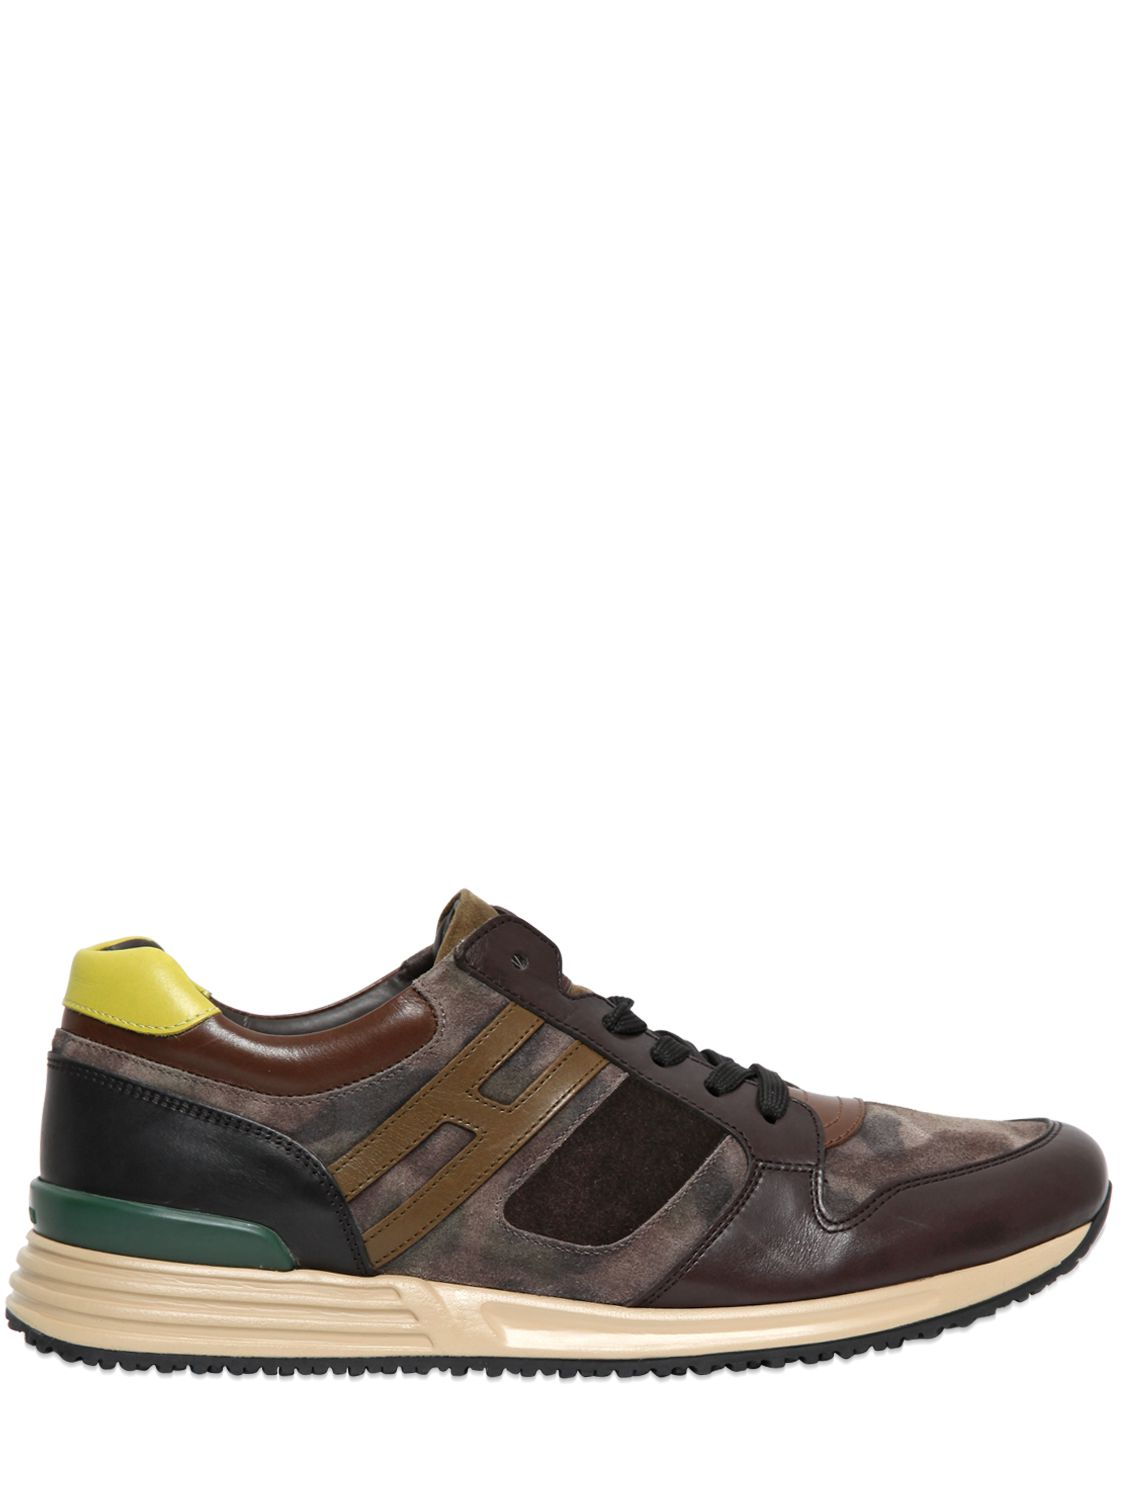 8bcaefe87224e Hogan Rebel Camo Suede & Leather Running Sneakers for Men - Lyst